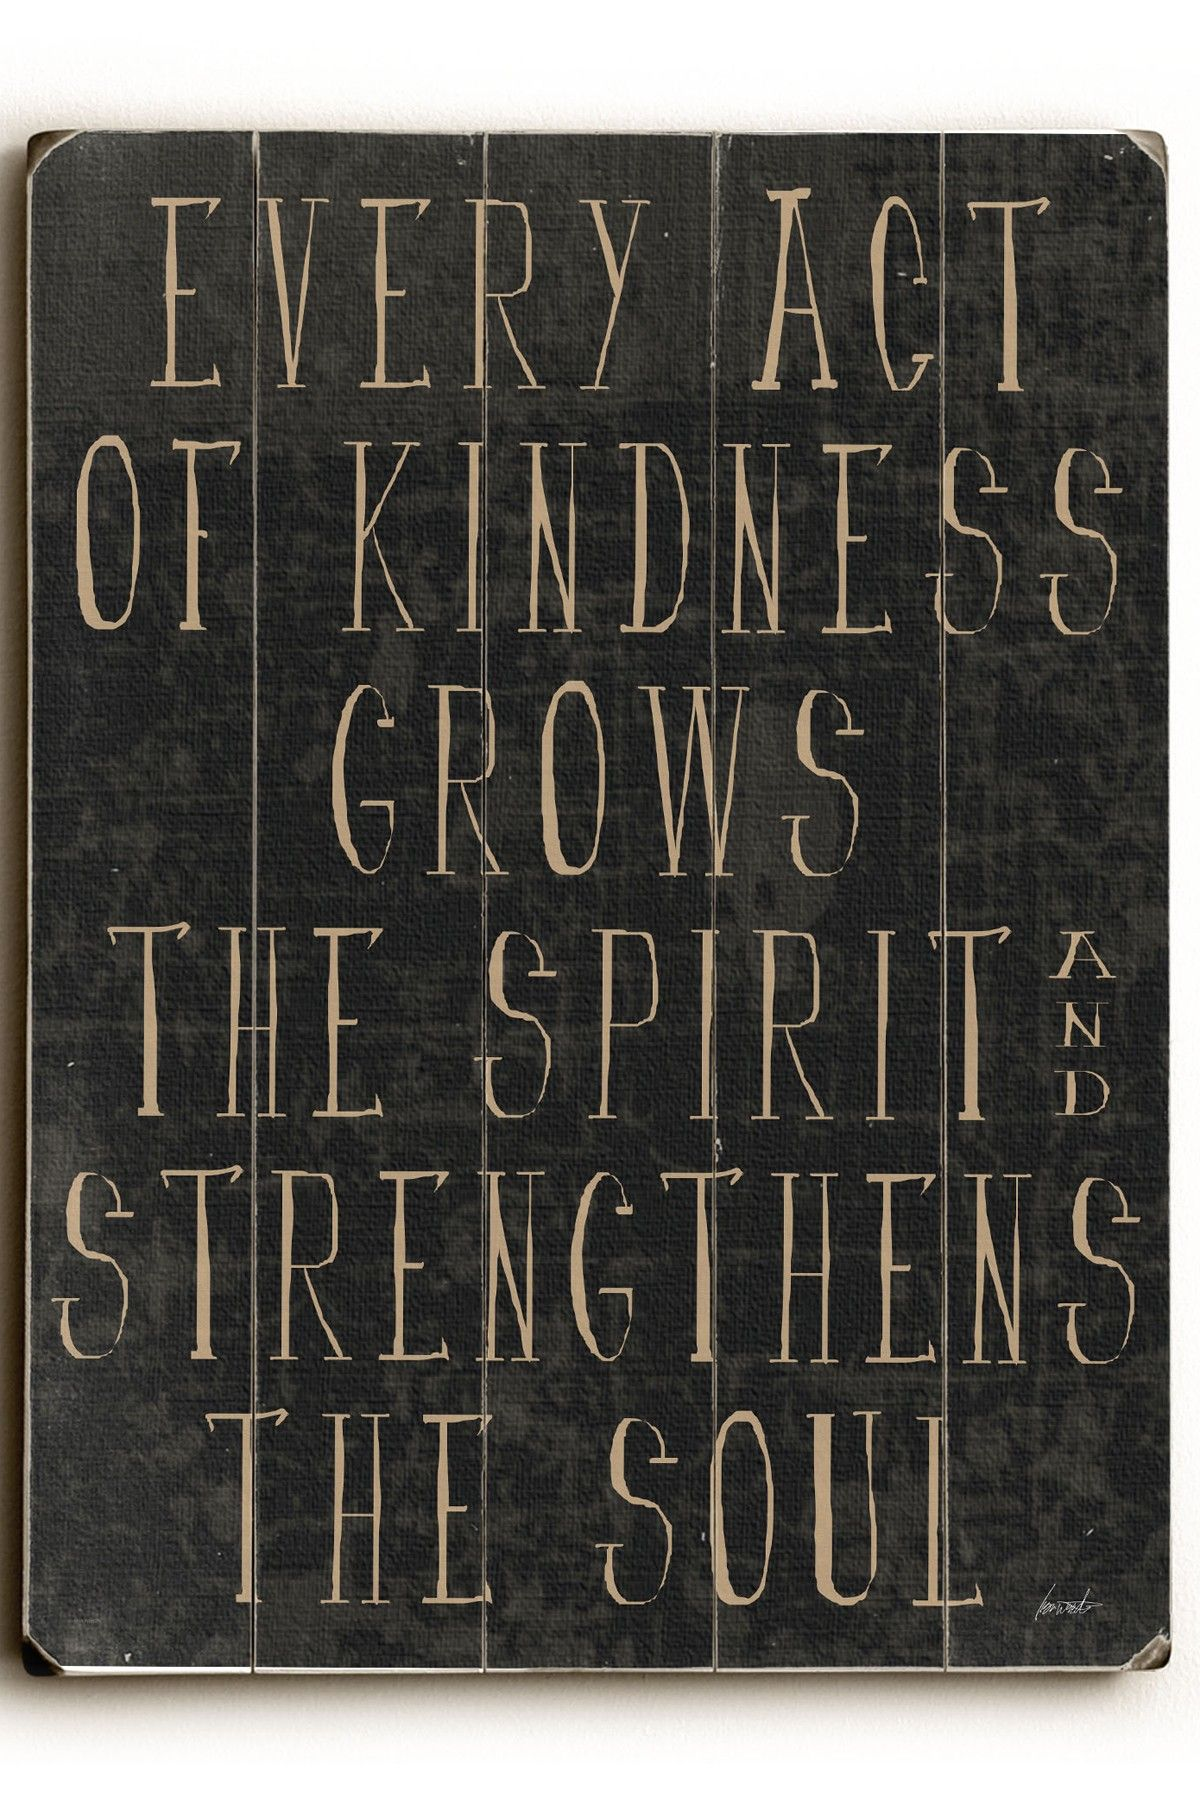 Love and light to all that read this one kind word pinterest